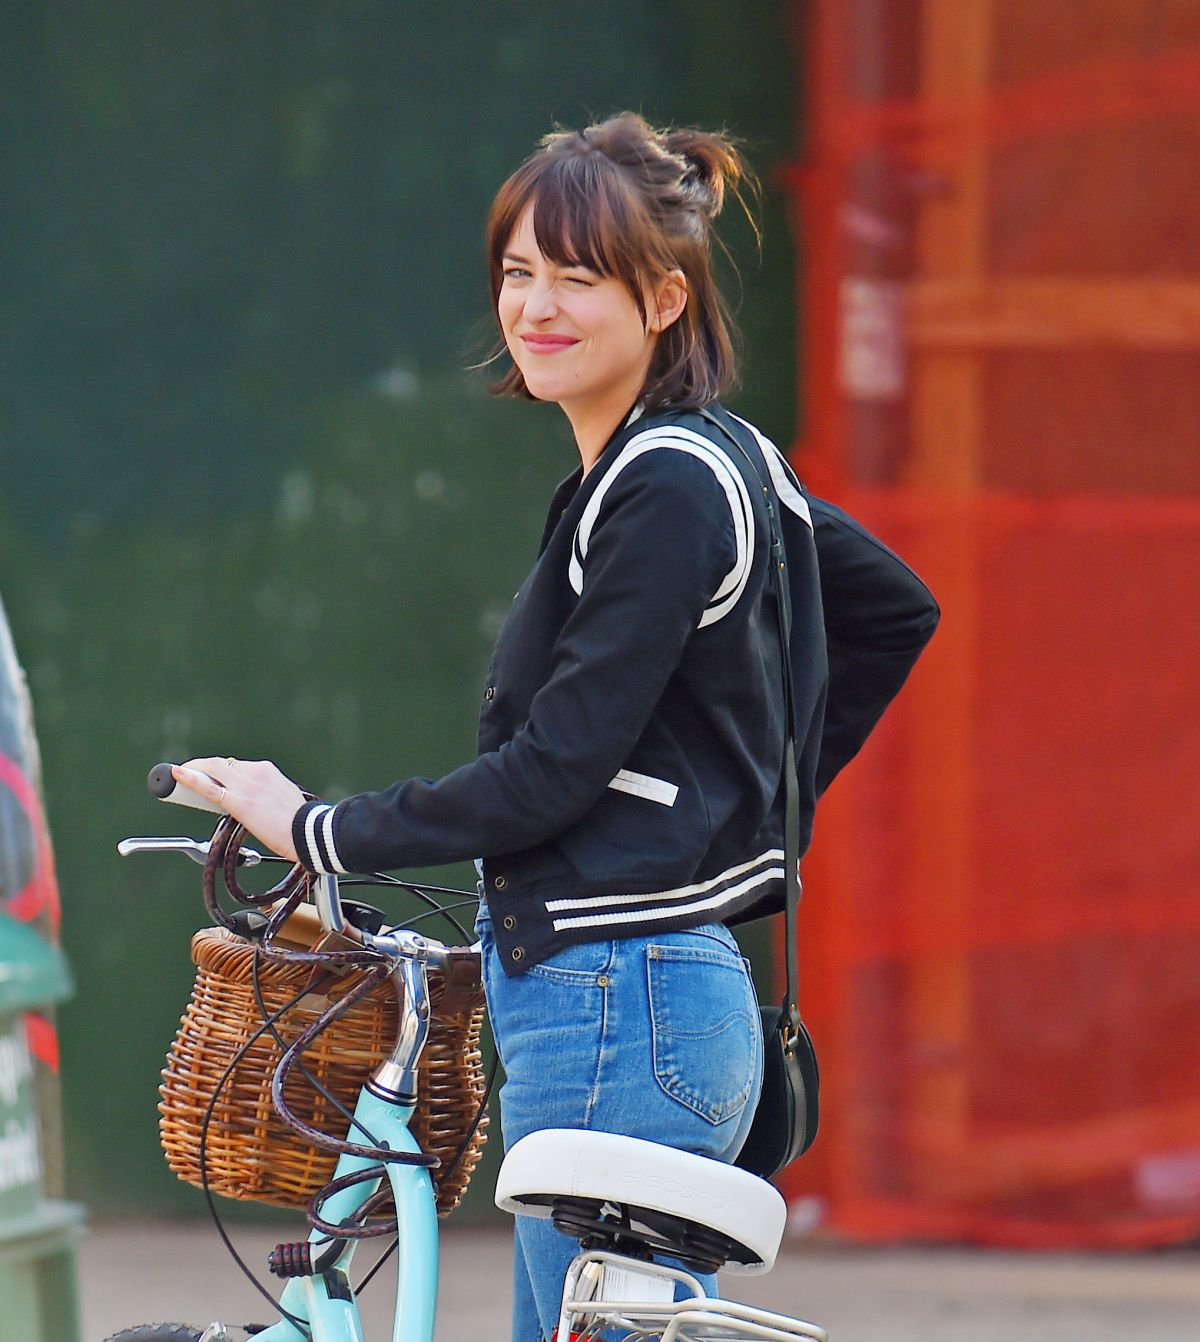 Dakota johnson on the set of how to be single in new york 04 21 full ccuart Image collections